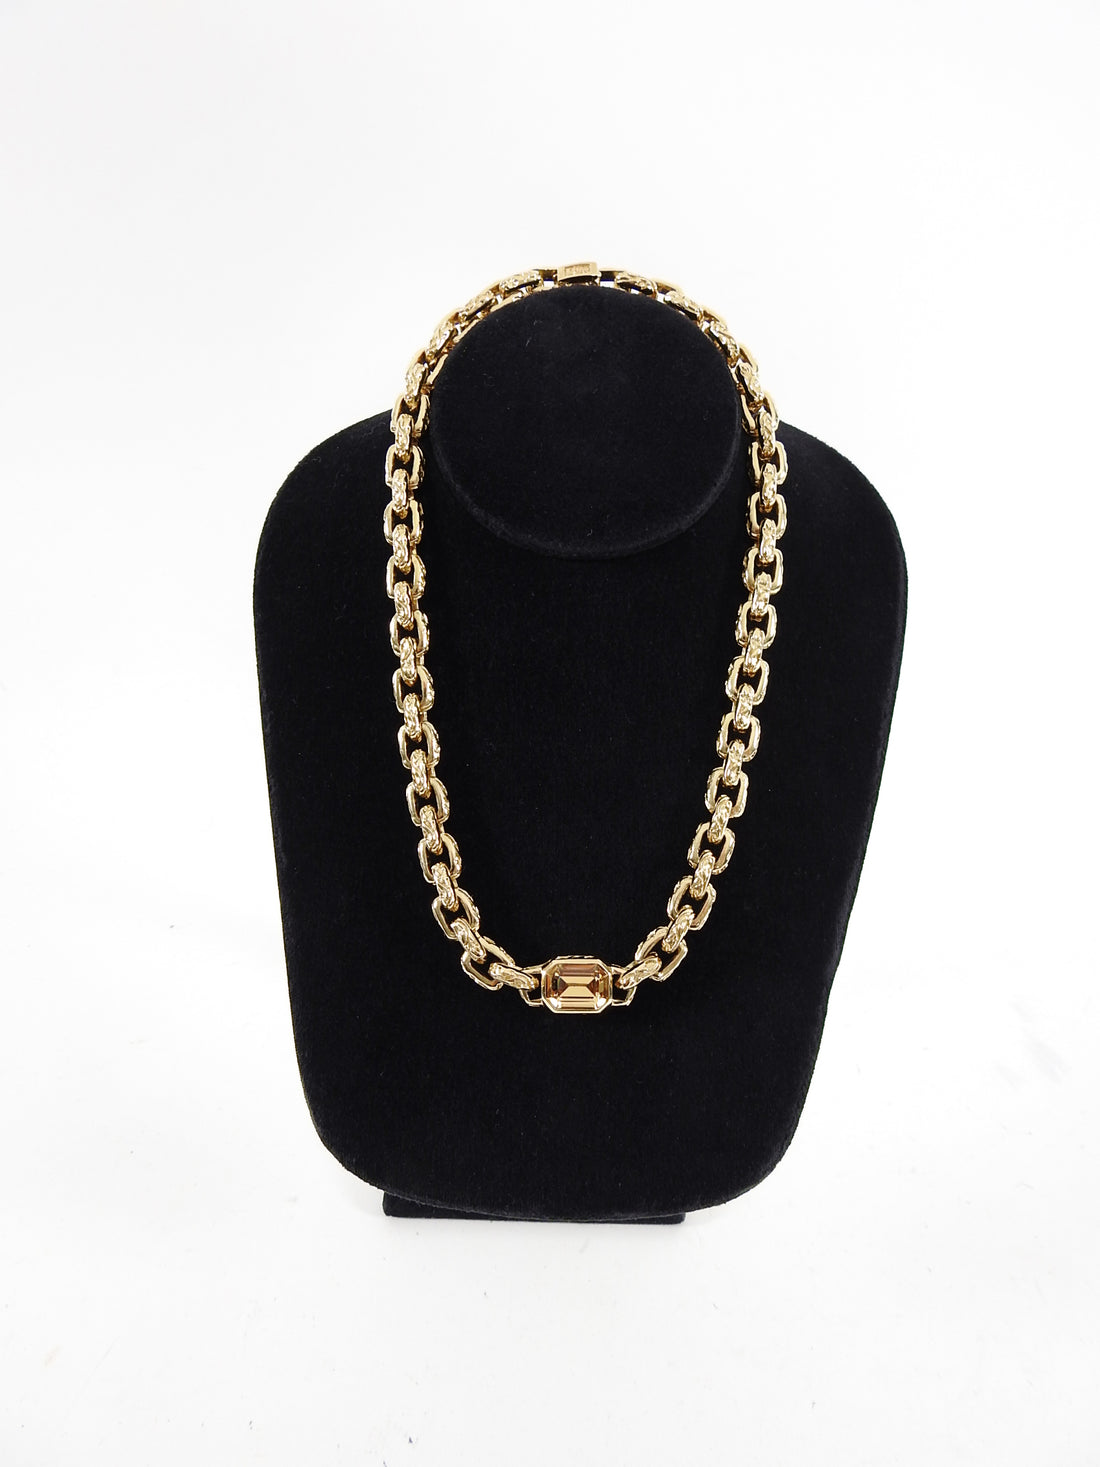 Christian Dior Vintage 1980's Gold Chain Link Topaz Necklace